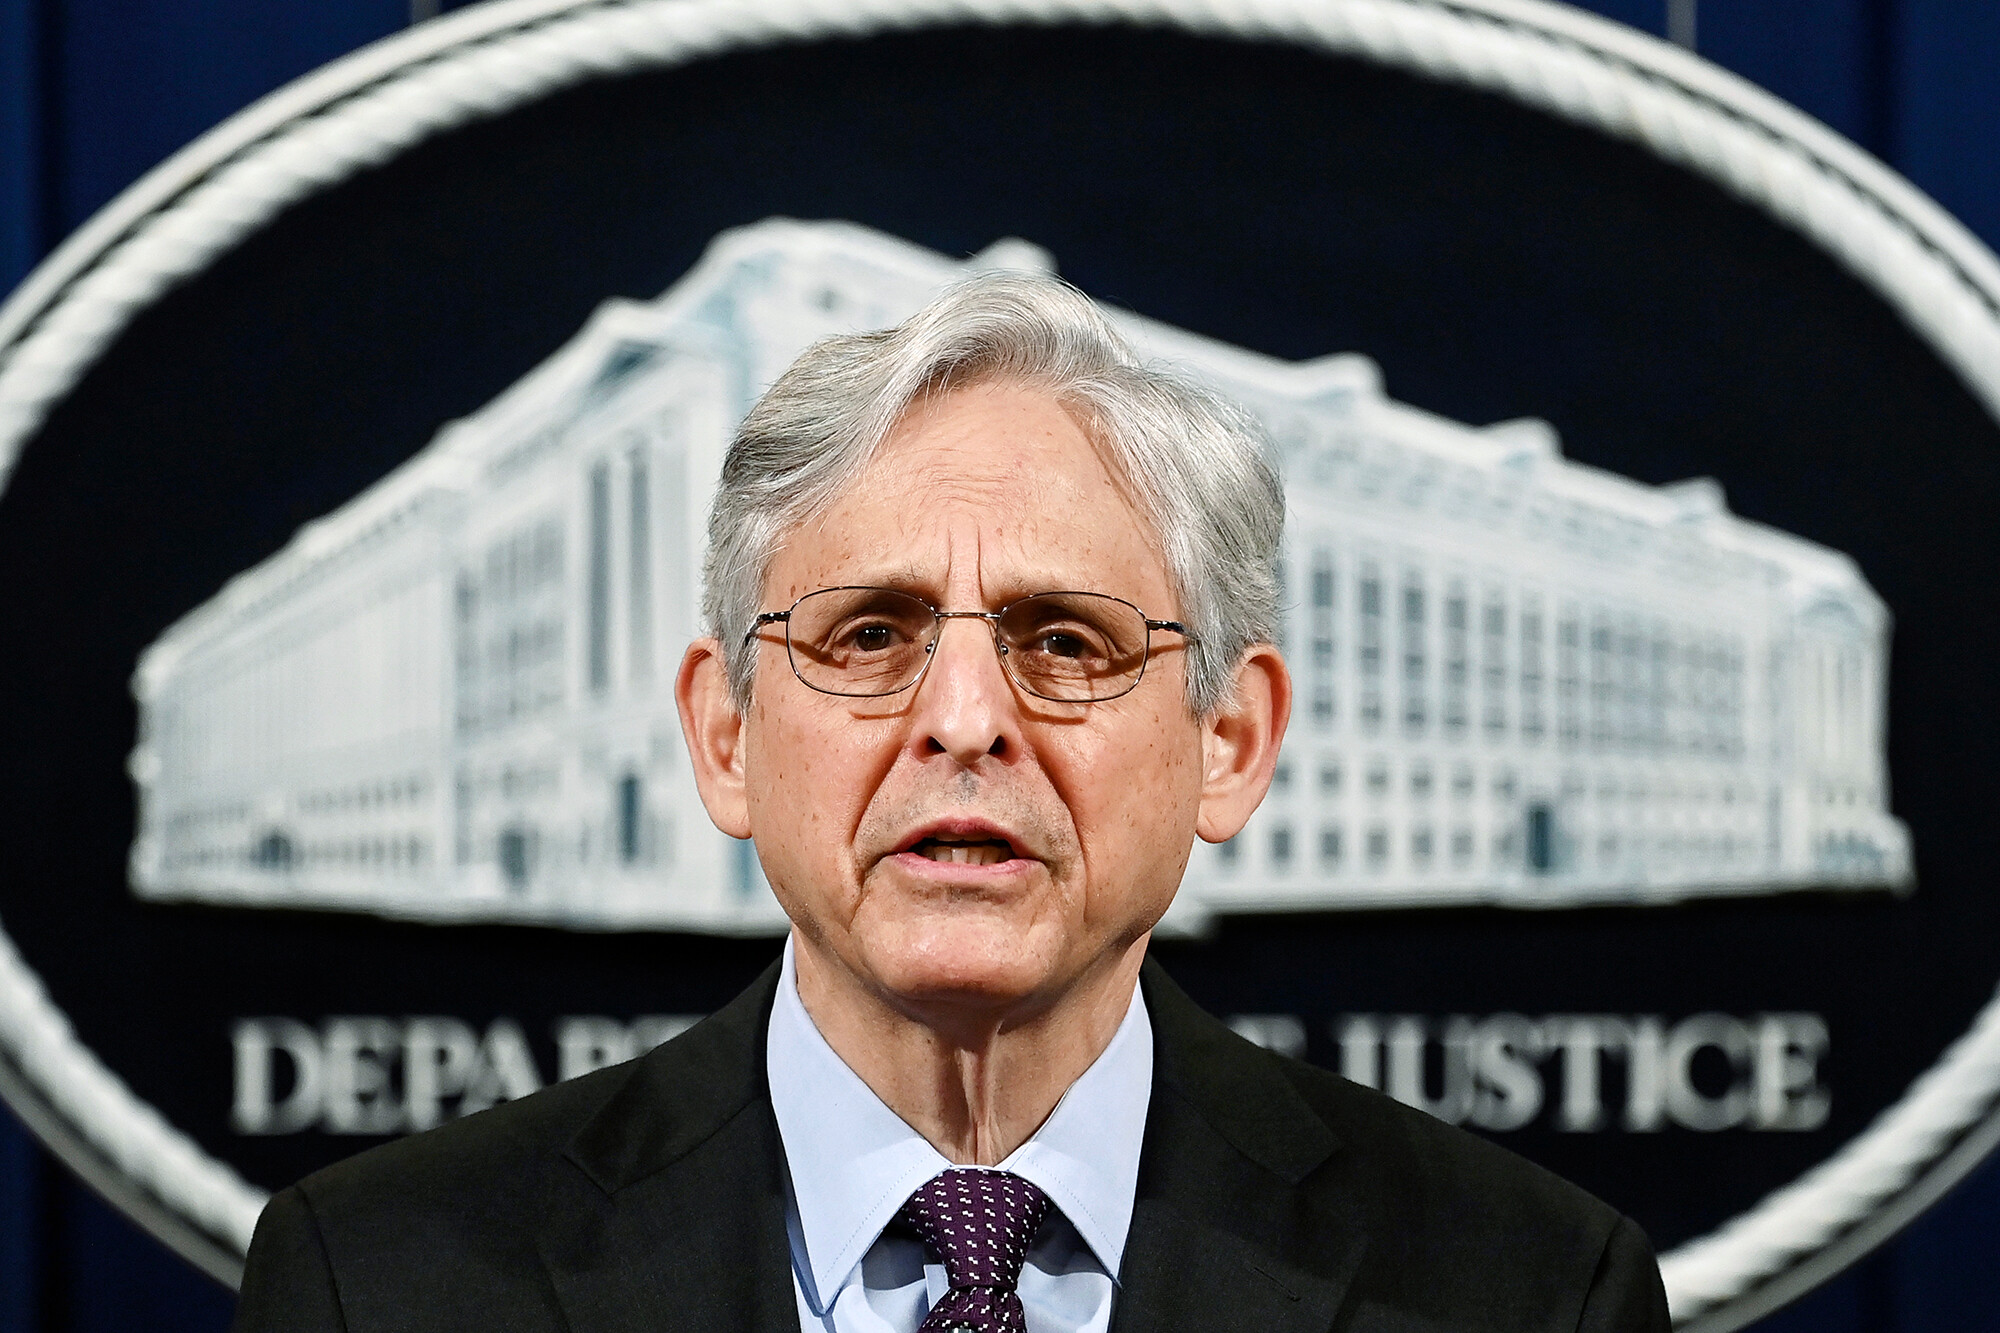 Liberals may end up liking much of Garland's Justice Department after all